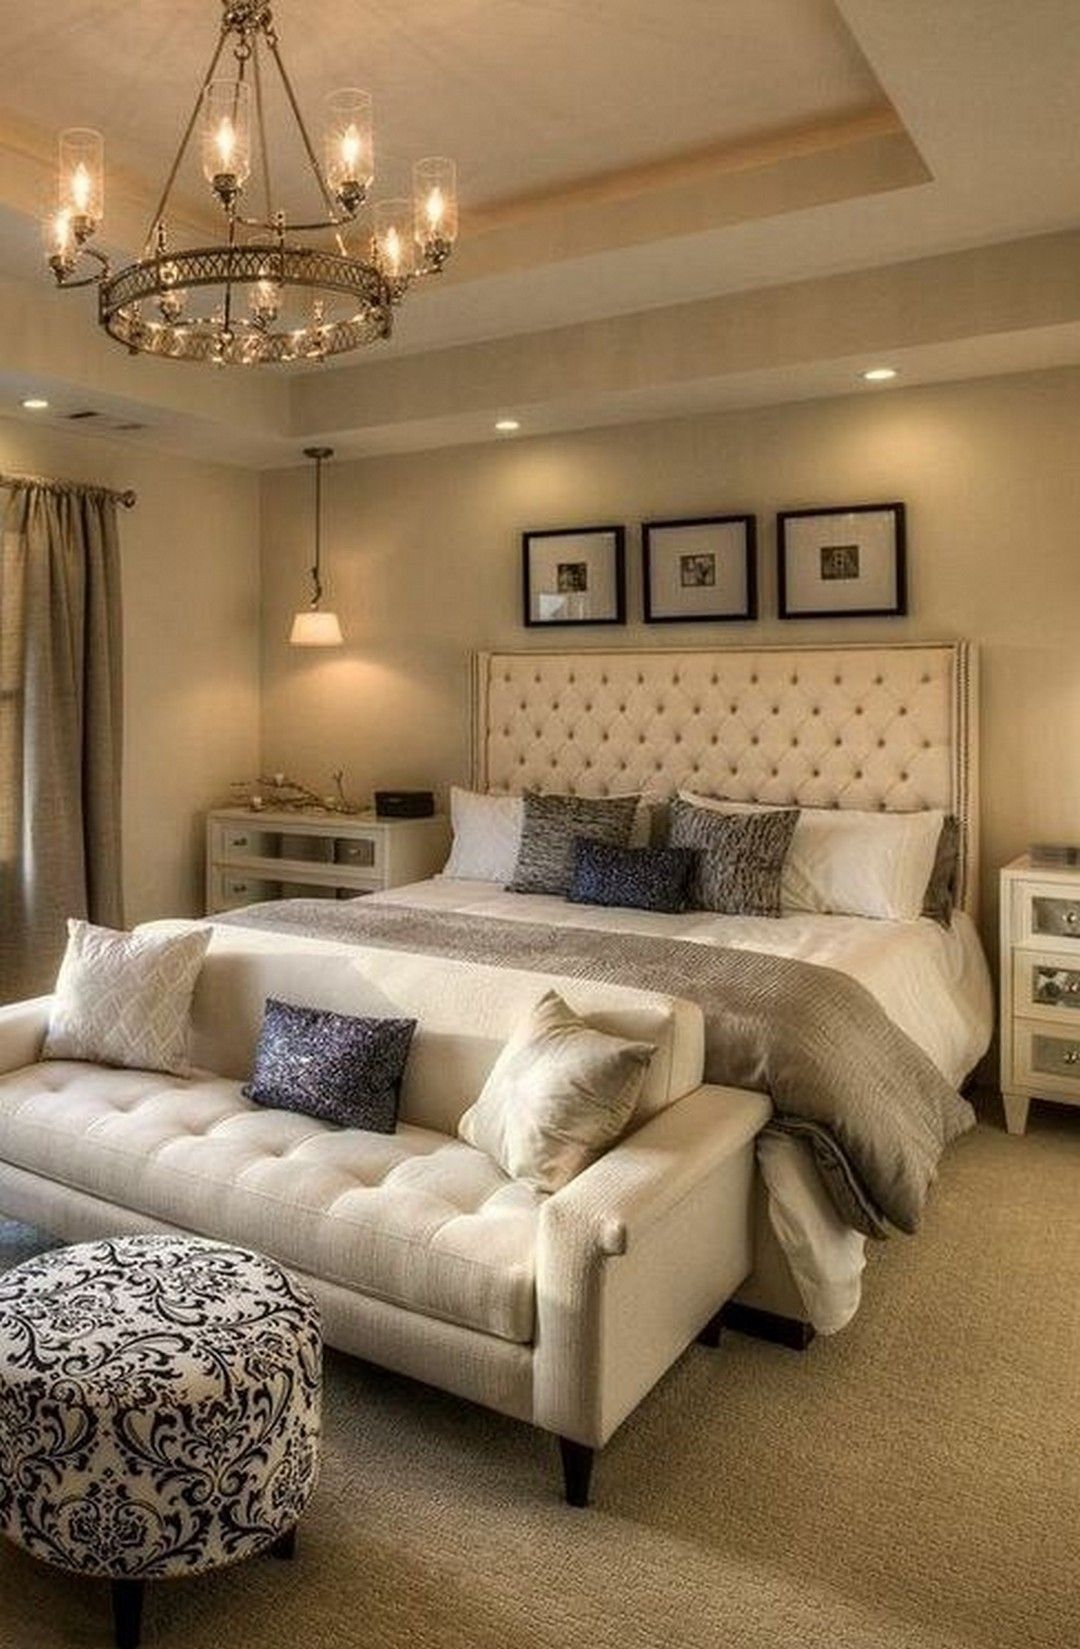 10 Great Ideas Of Traditional Bedroom Home Decors To Copy In Your Home  Https:/